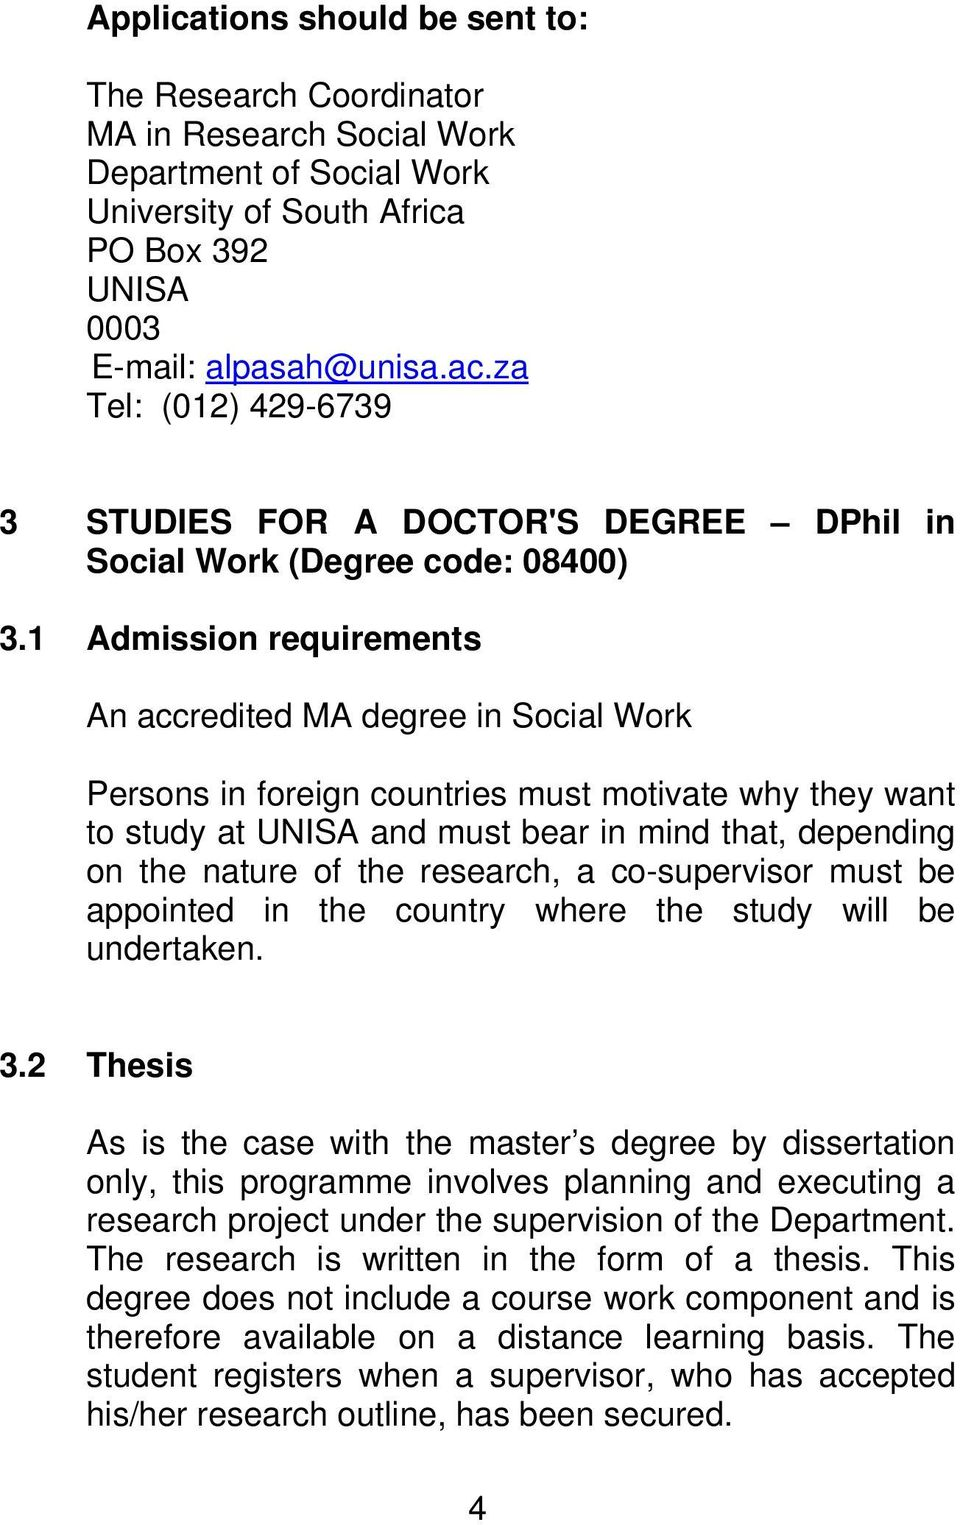 1 Admission requirements An accredited MA degree in Social Work Persons in foreign countries must motivate why they want to study at UNISA and must bear in mind that, depending on the nature of the